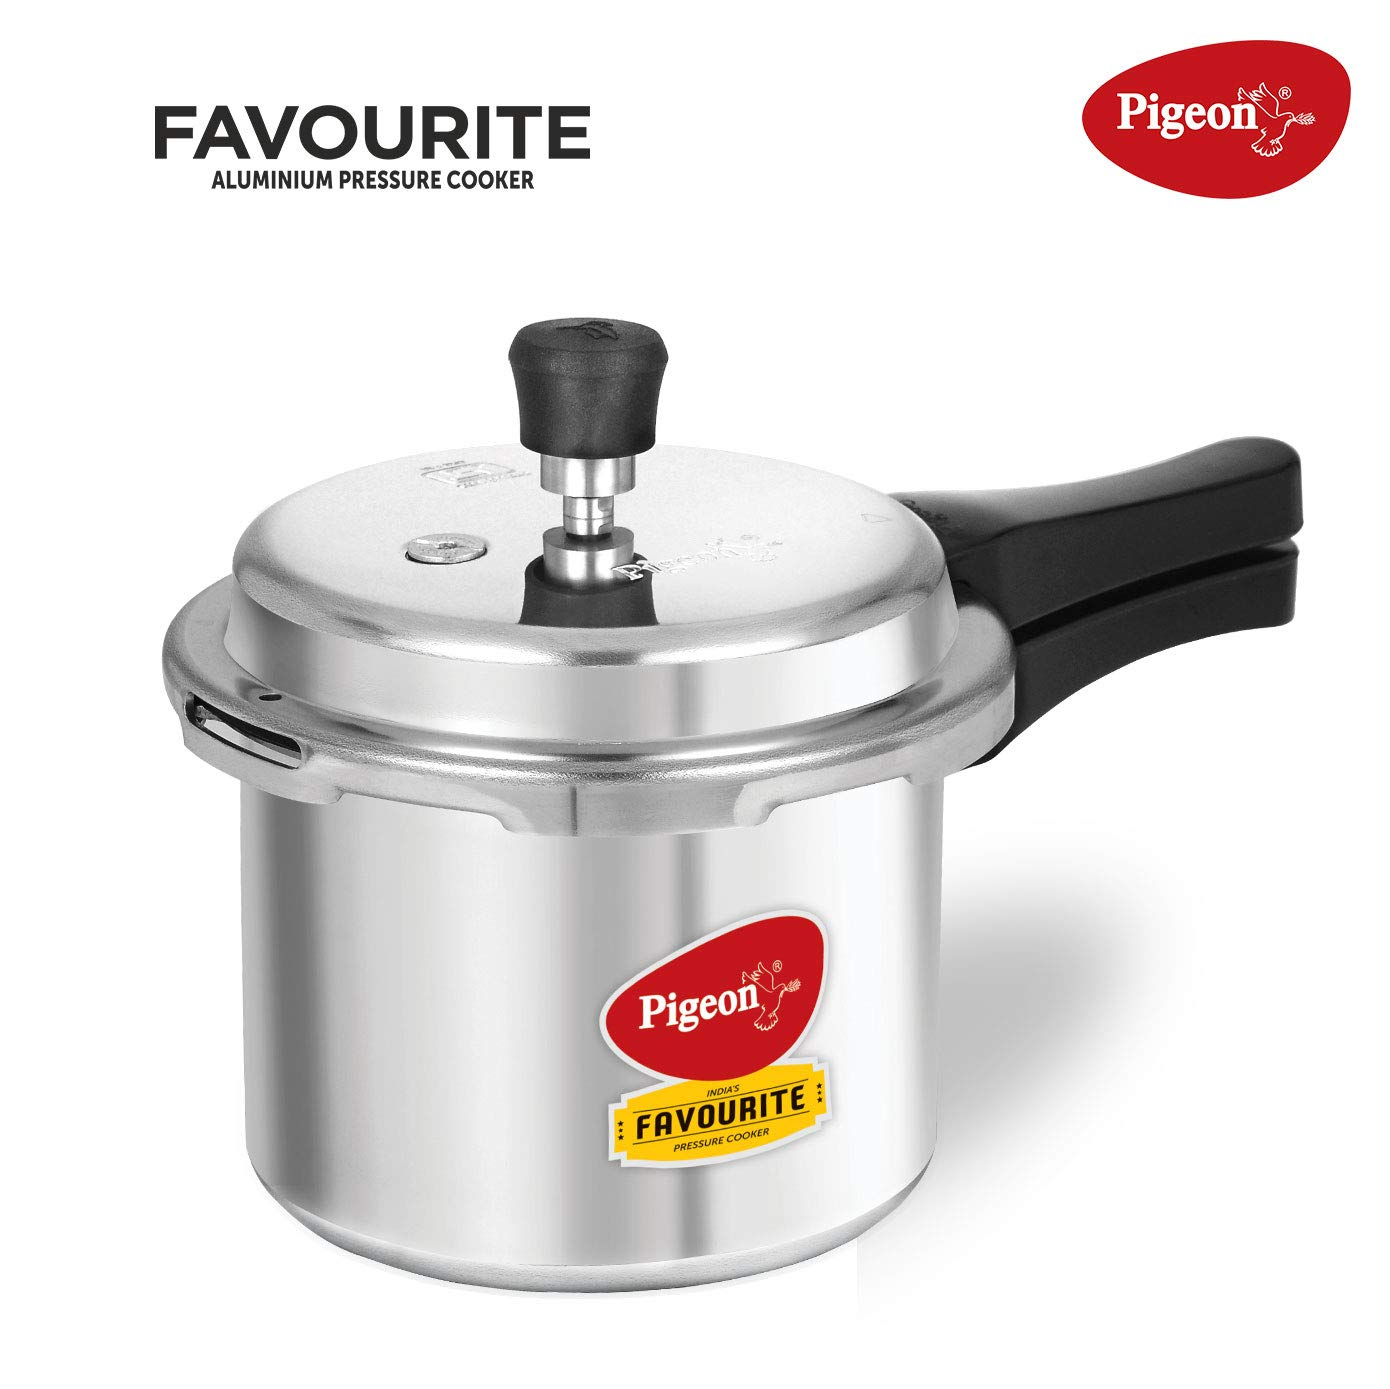 Pigeon by Stovekraft, Favorite Induction Base Aluminum Pressure Cooker